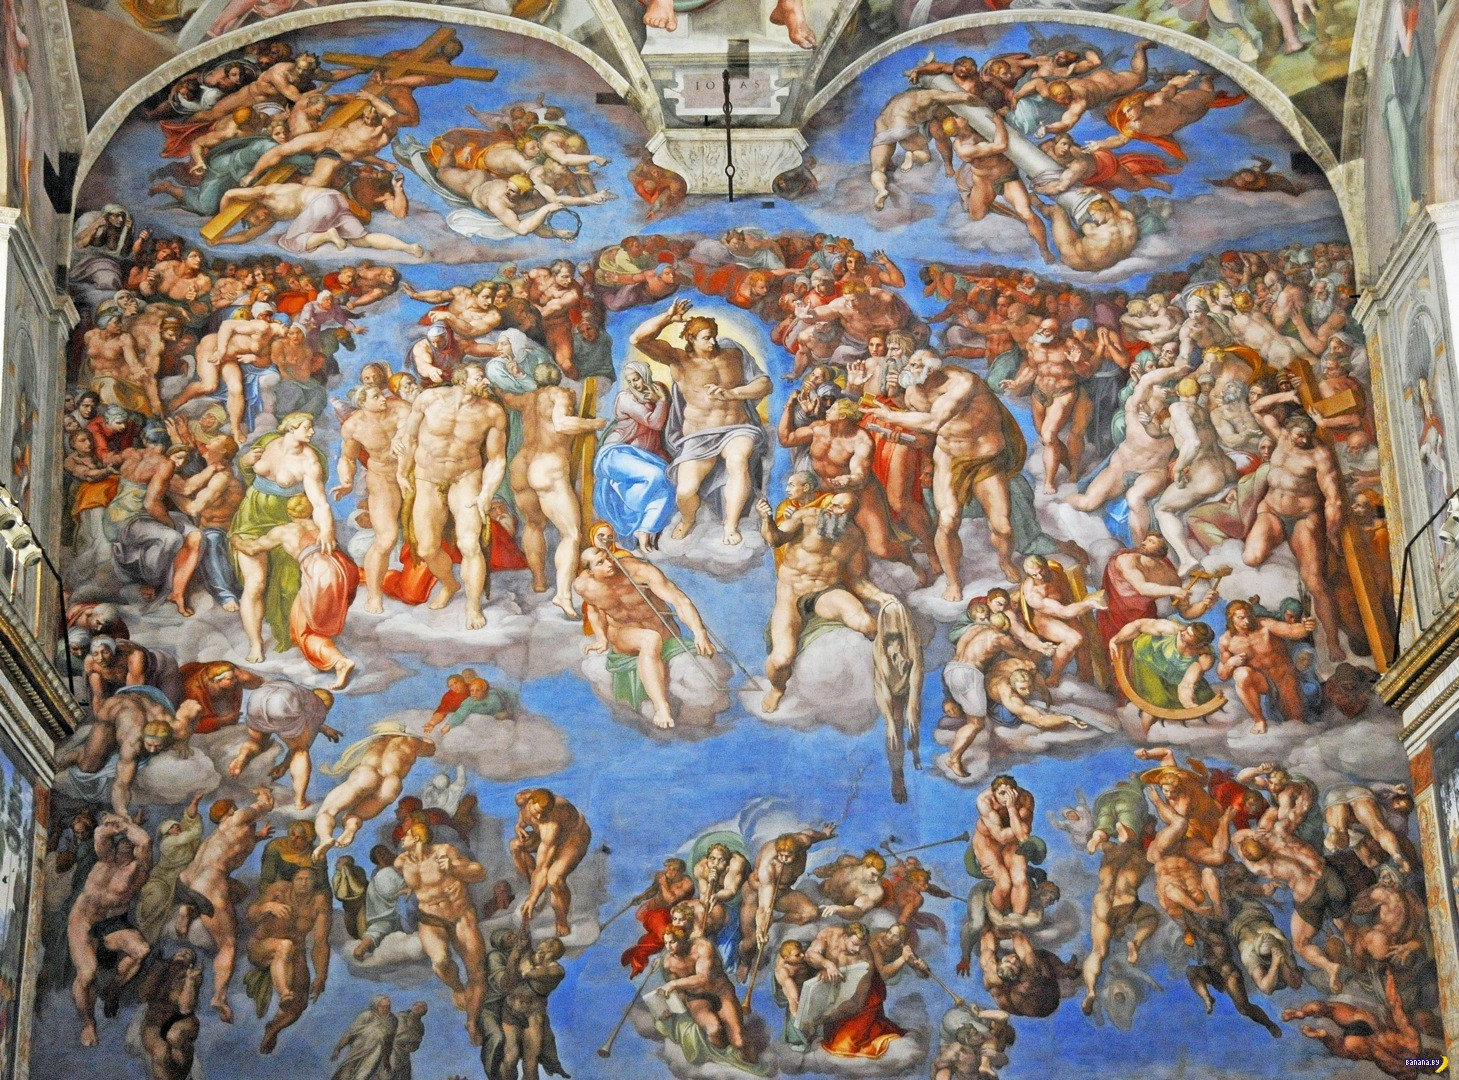 a painting analysis of the last judgement by michelangelo